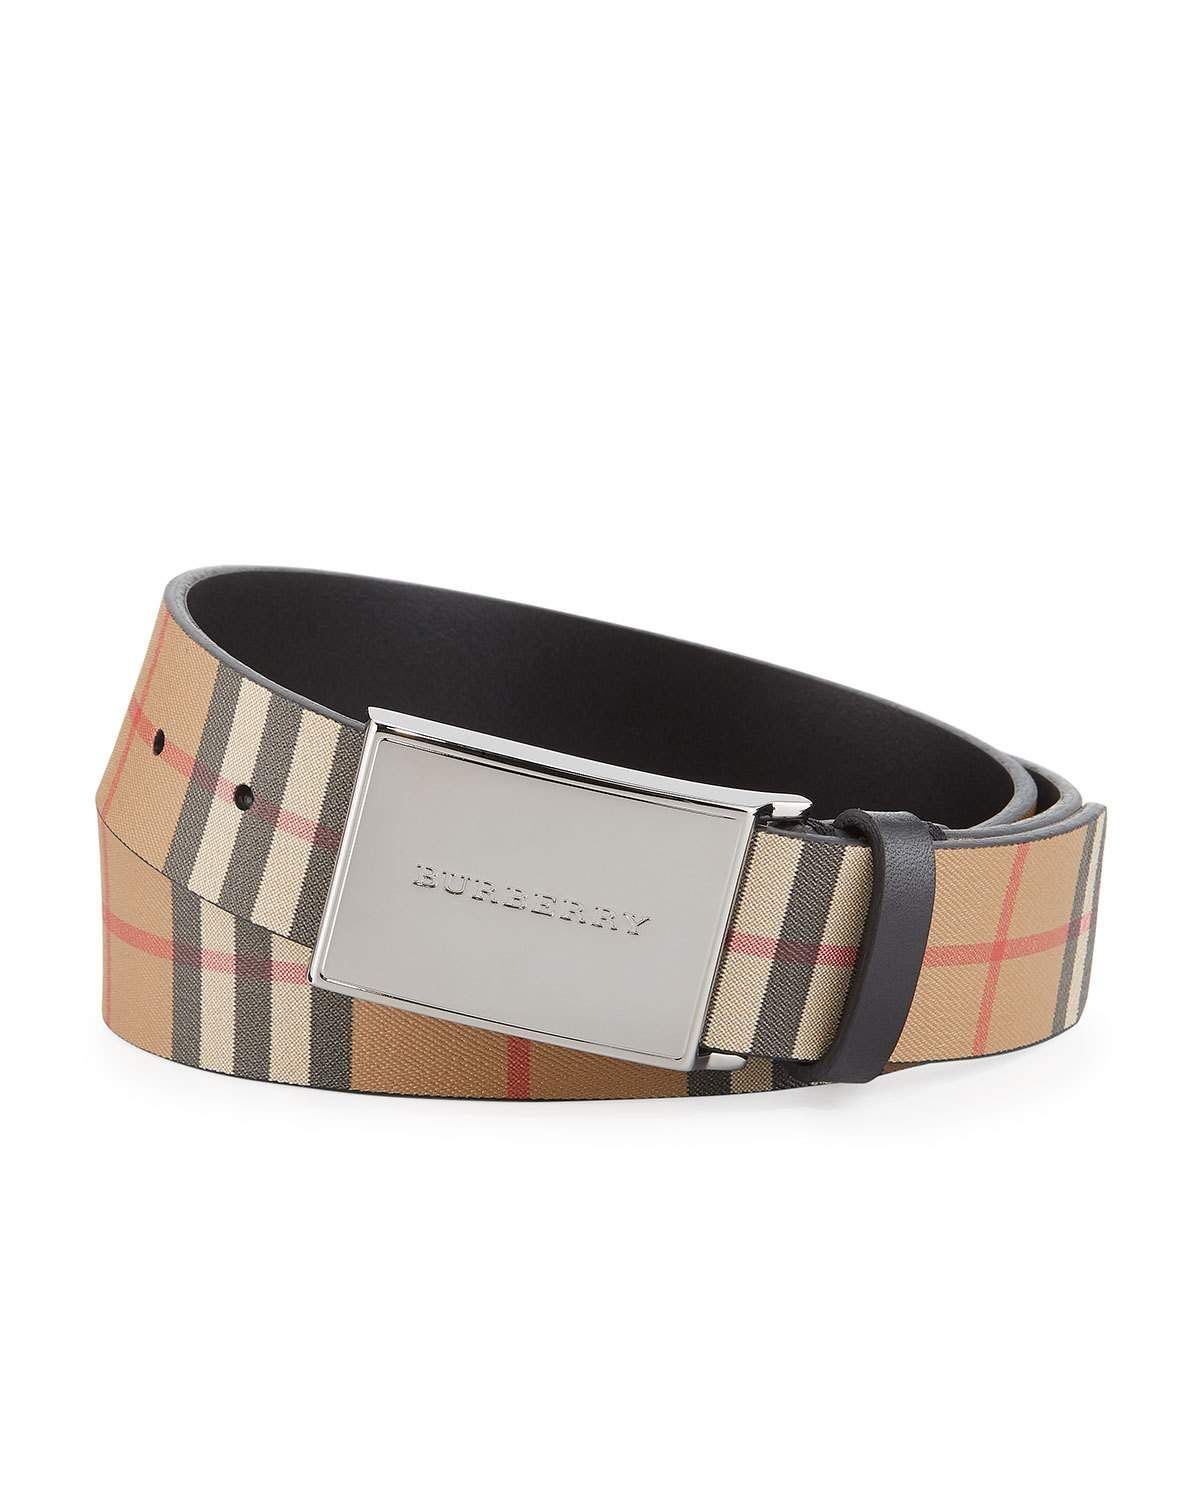 e3c922715c8e Burberry Men s Charles Check Suede Belt